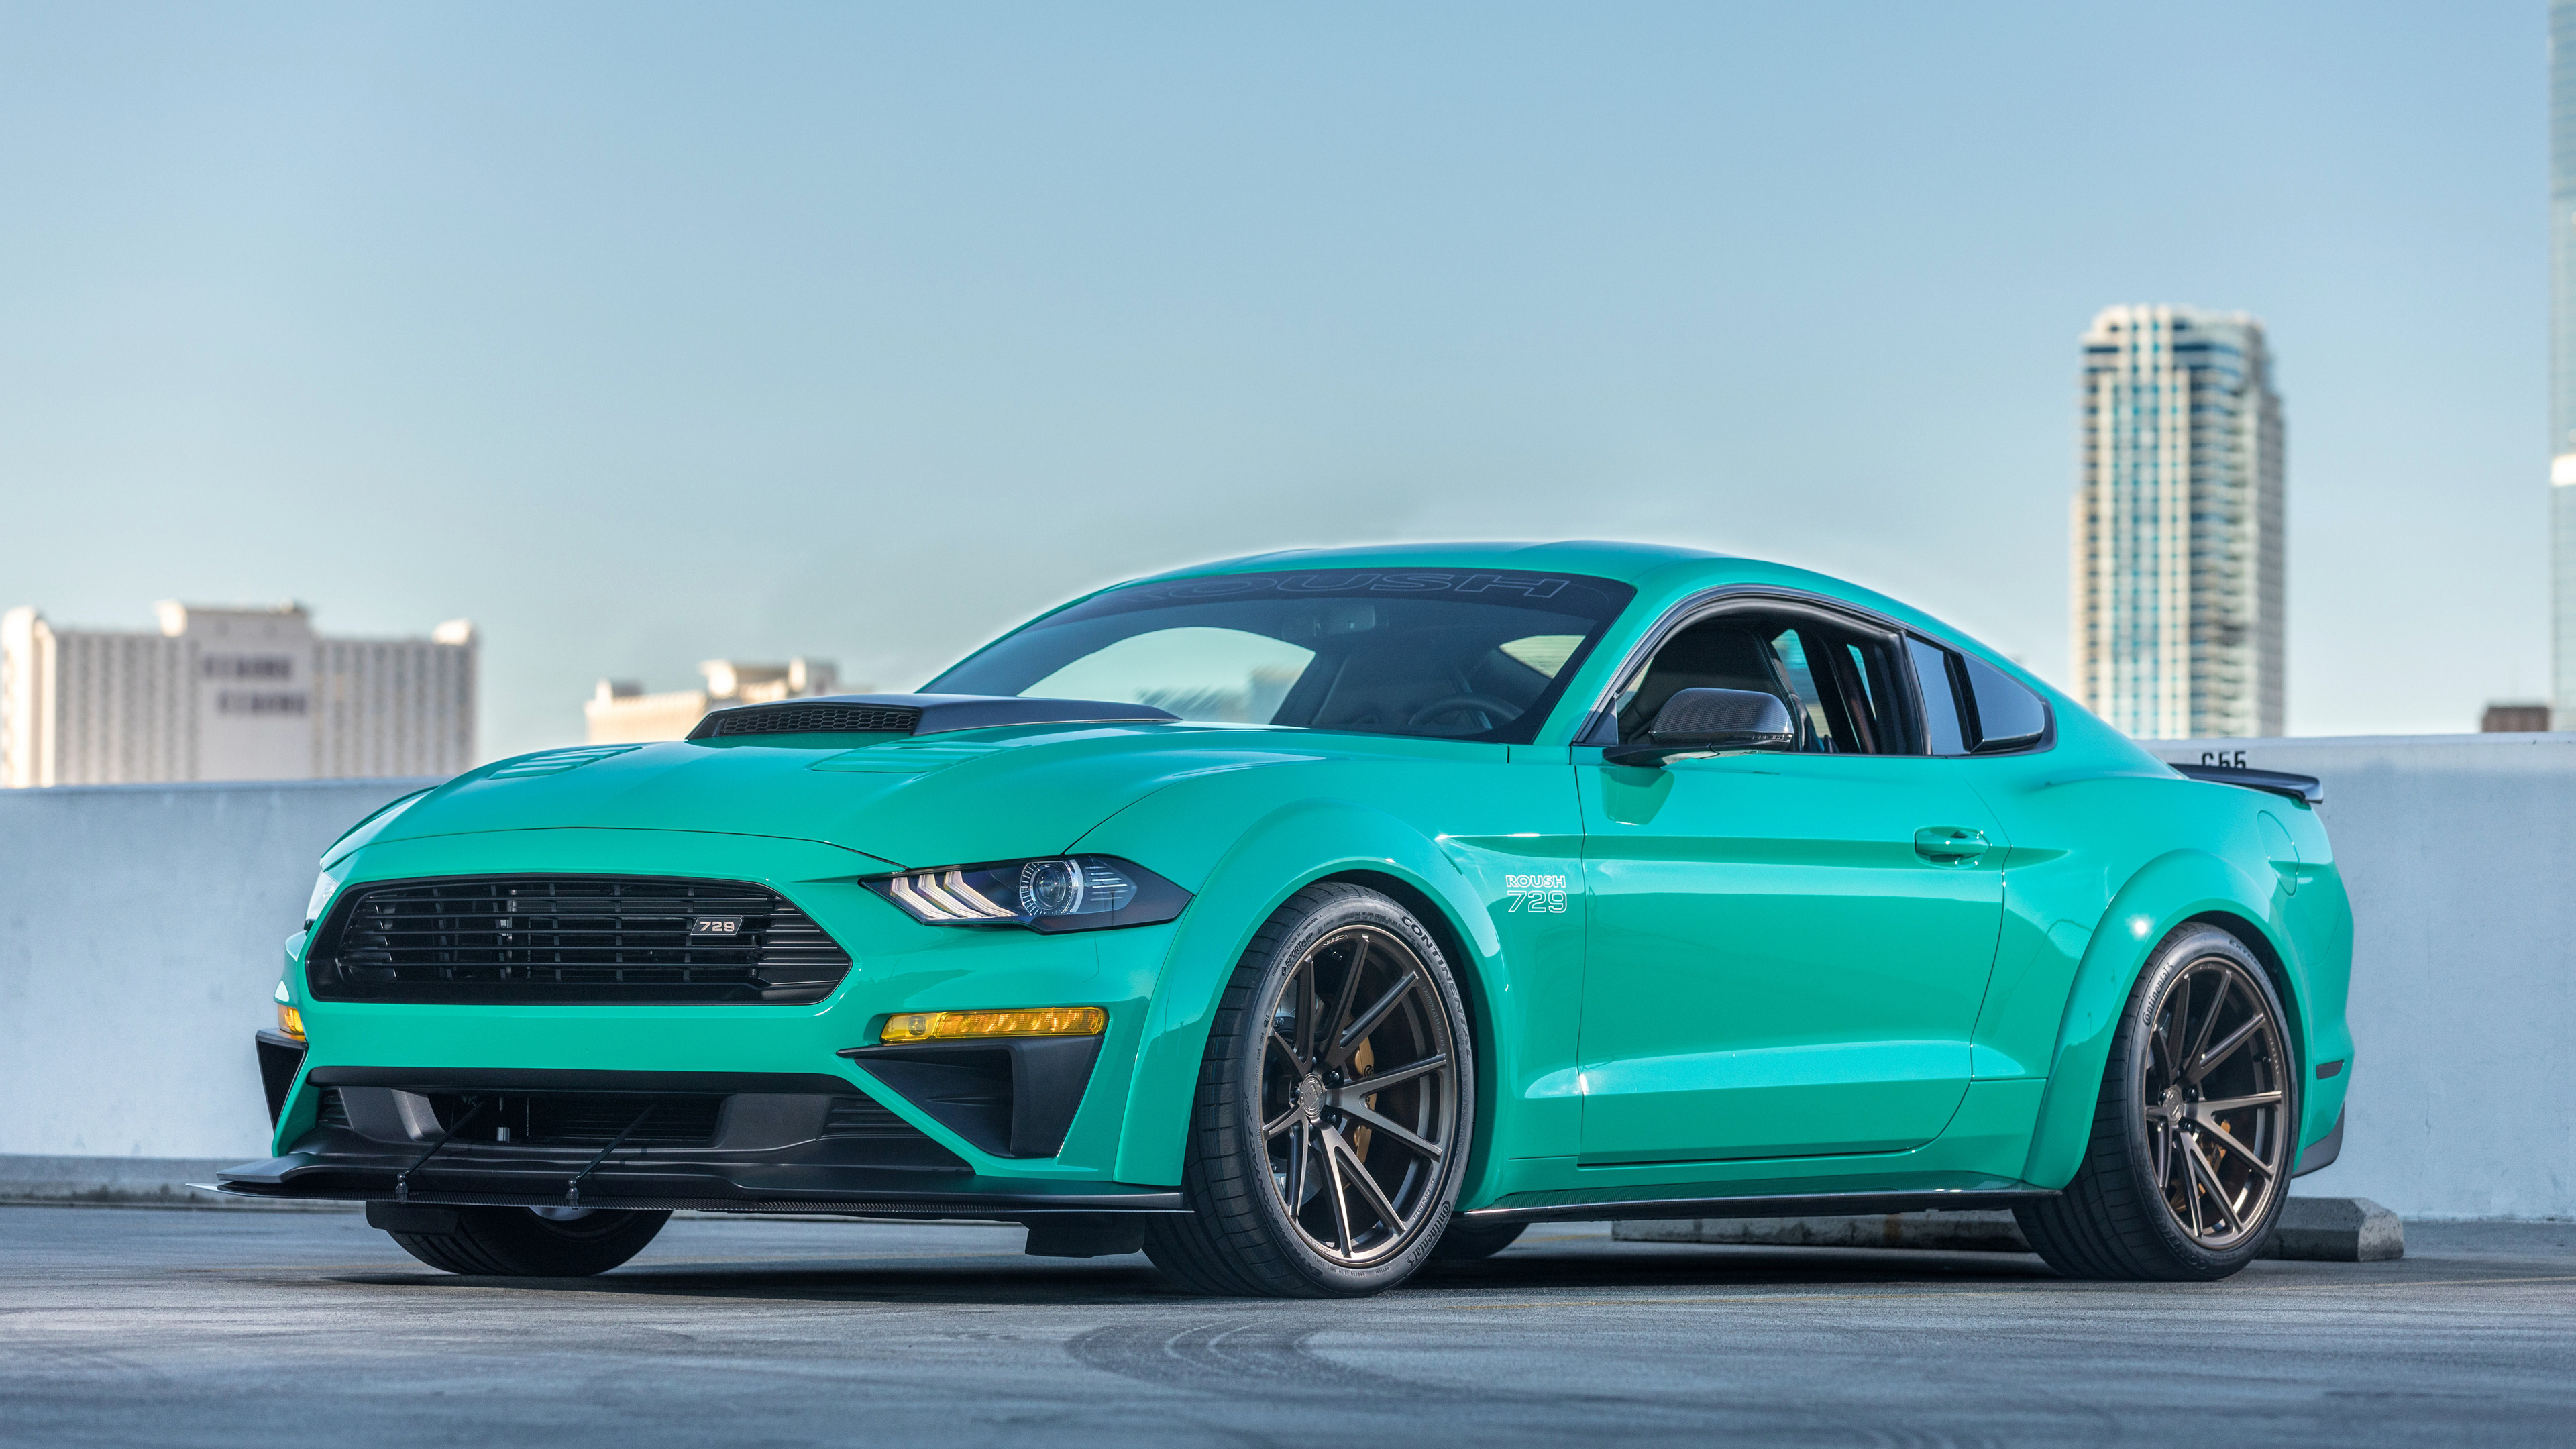 ford mustang 2018 1539107884 - Ford Mustang 2018 - hd-wallpapers, ford mustang wallpapers, cars wallpapers, 4k-wallpapers, 2018 cars wallpapers